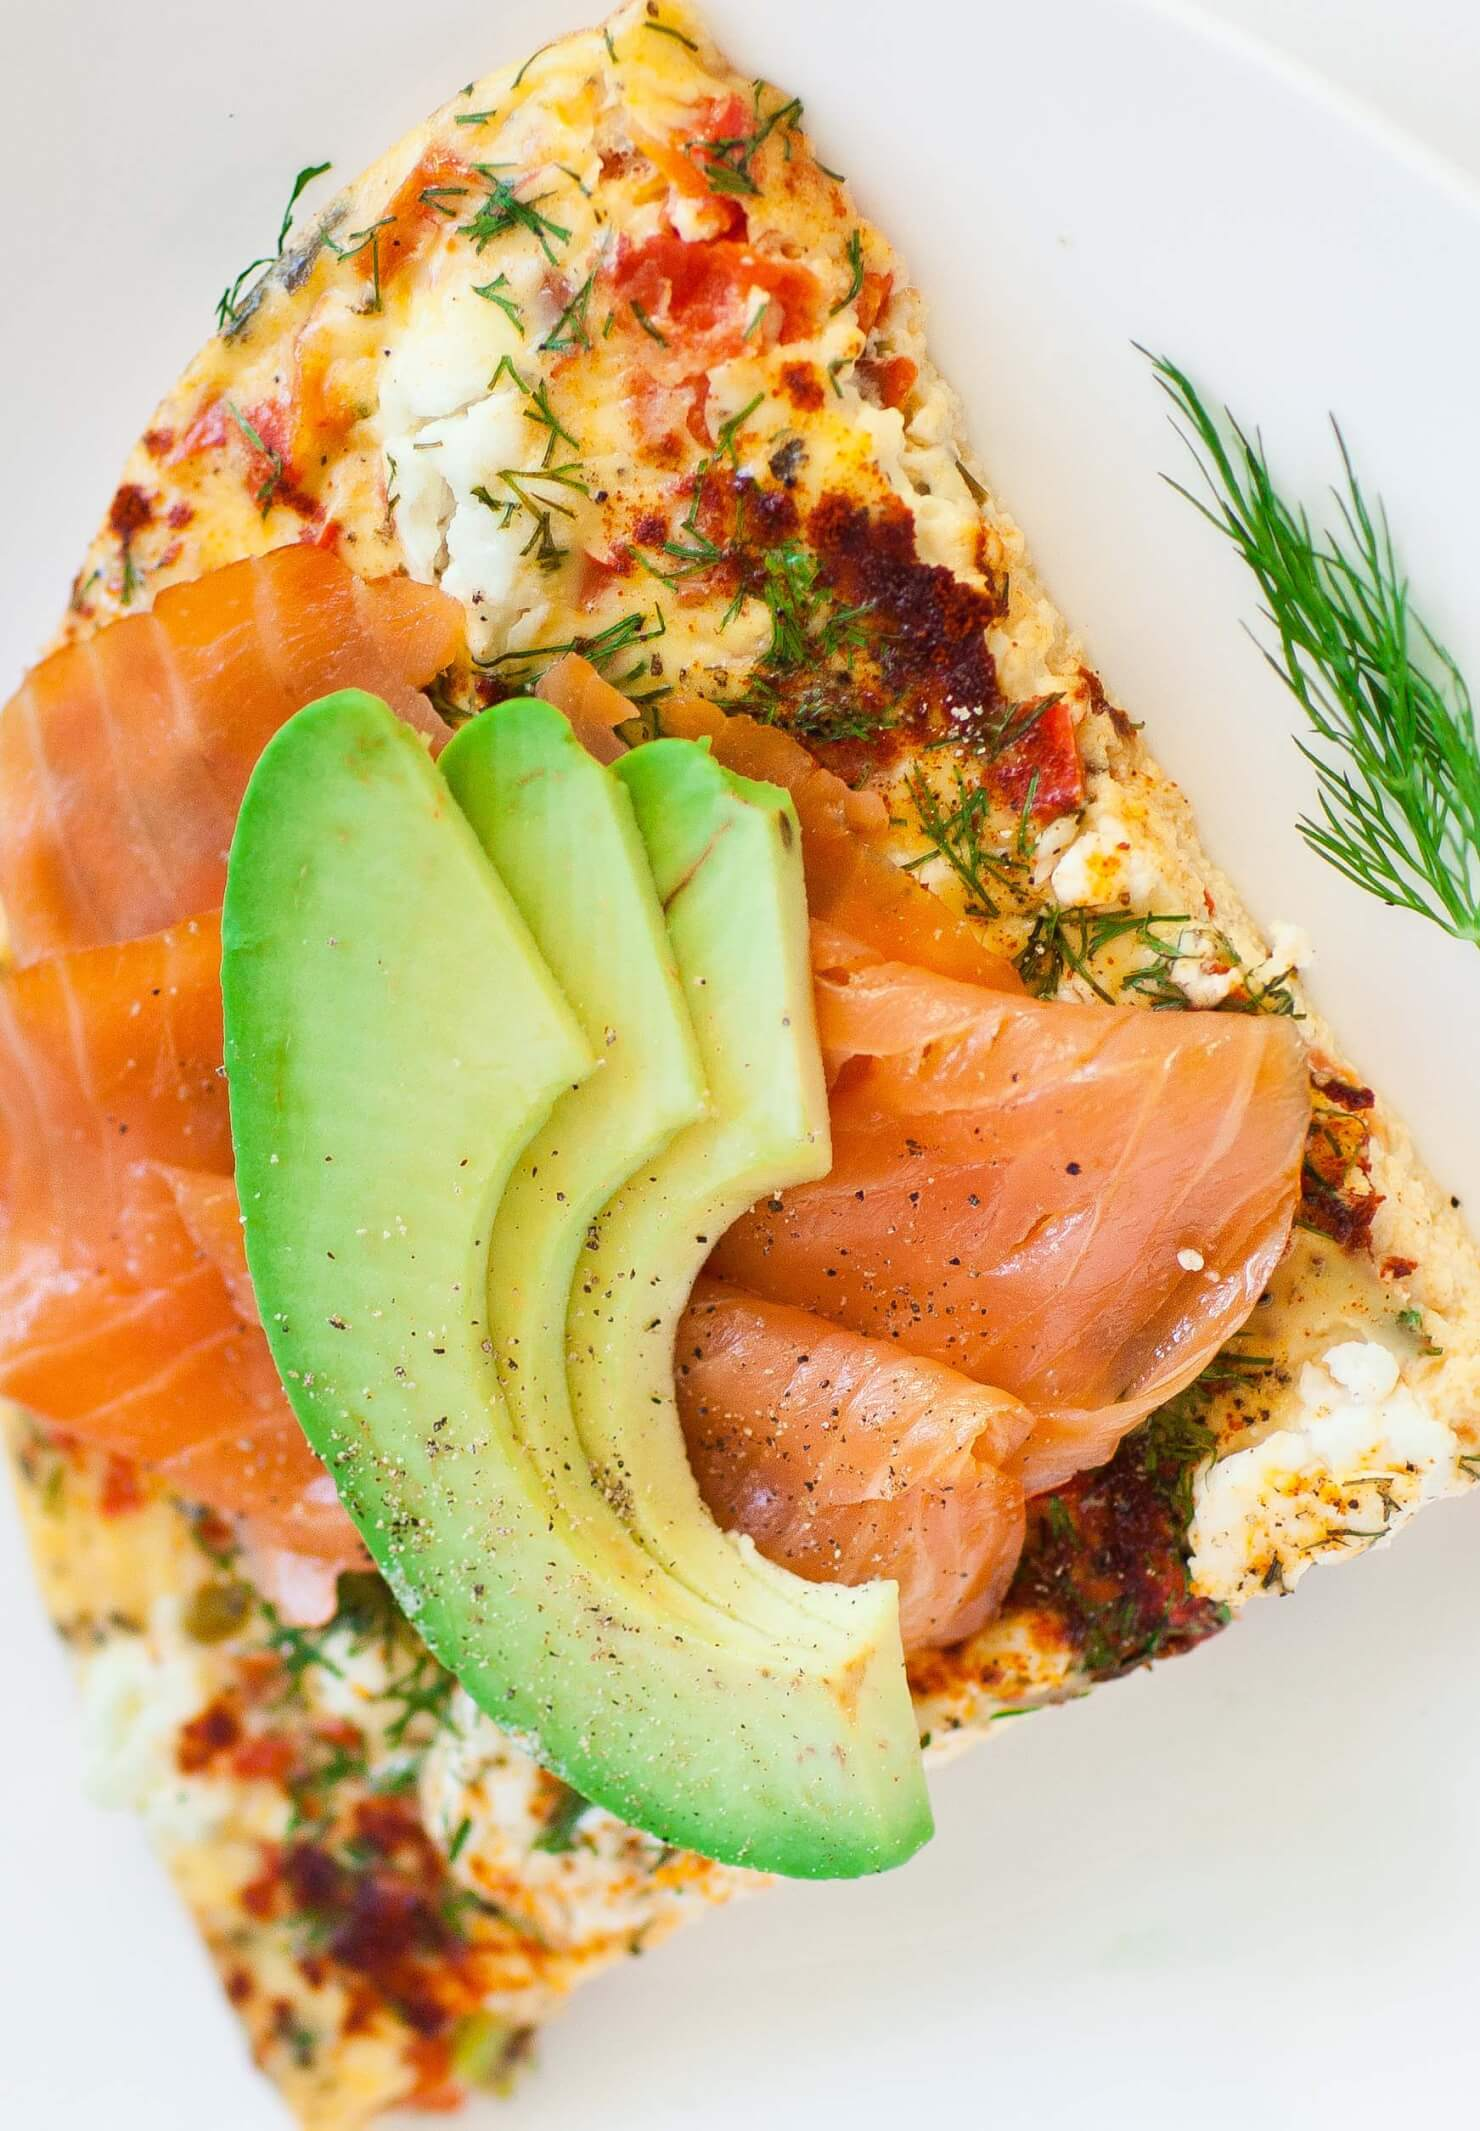 cheese fritatta with smoked salmon and avocado